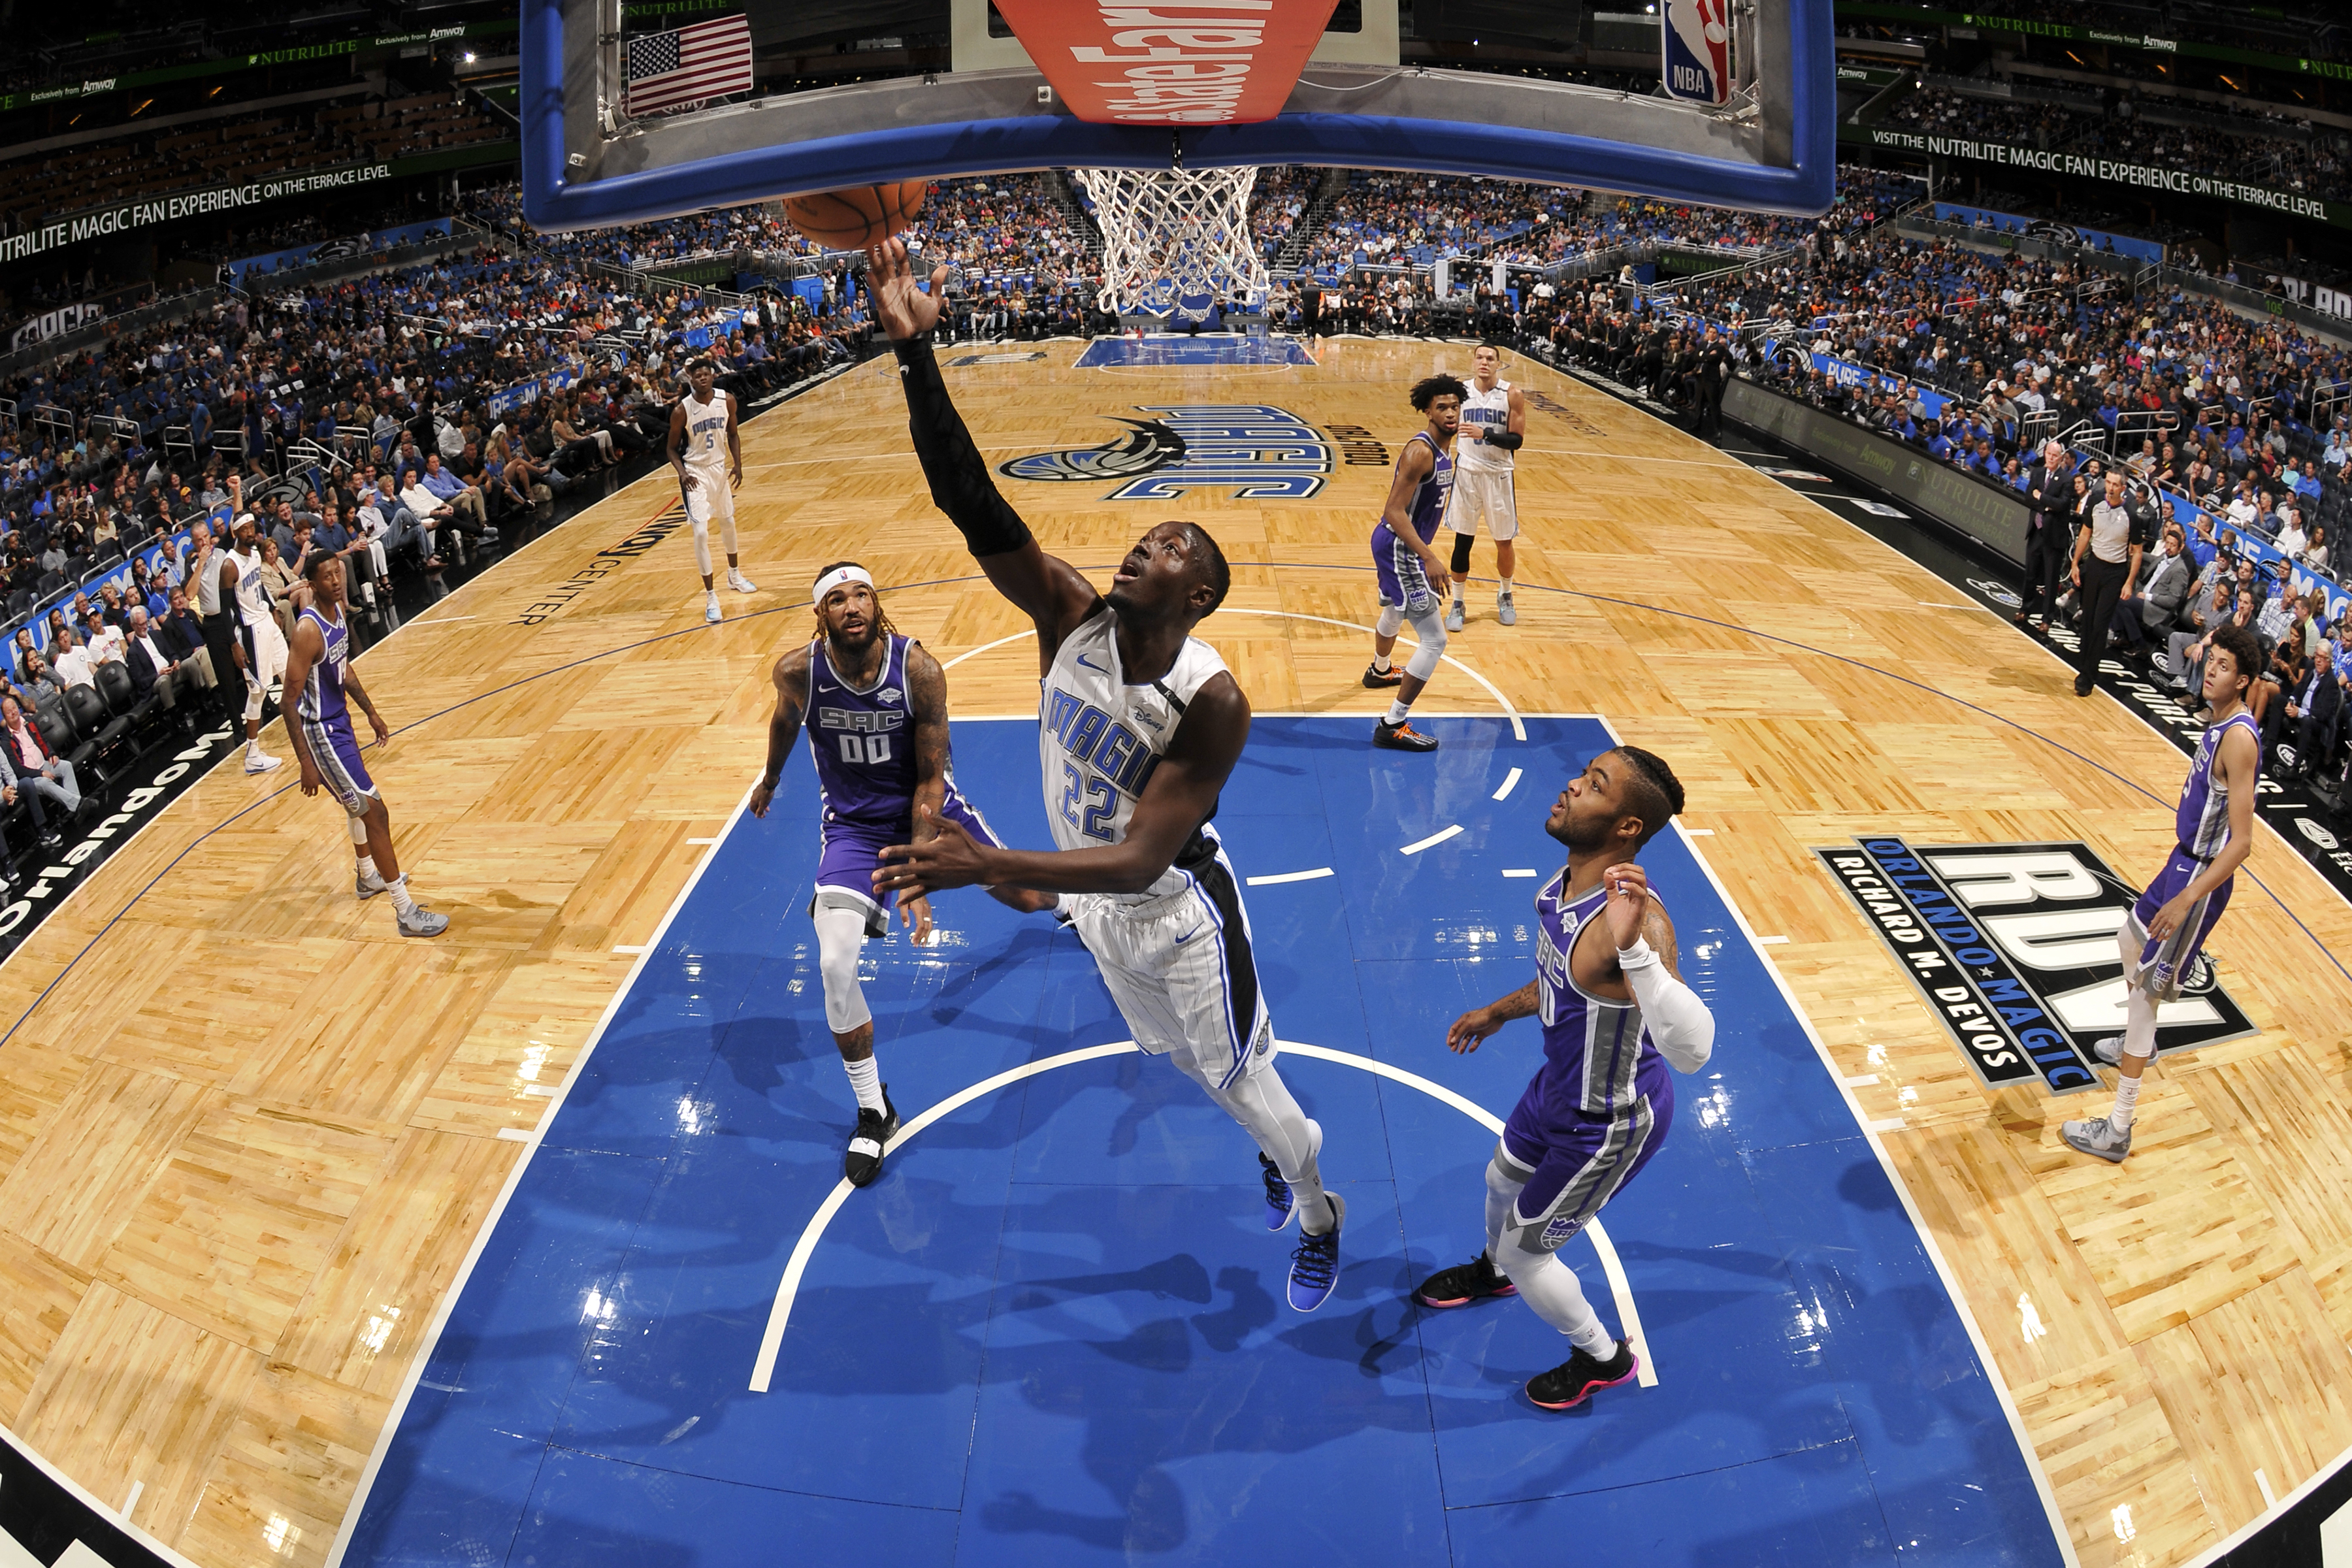 Jerian Grant of the Orlando Magic drives to the basket against the Sacramento Kings on Oct. 30, 2018 at Amway Center in Orlando, Florida.